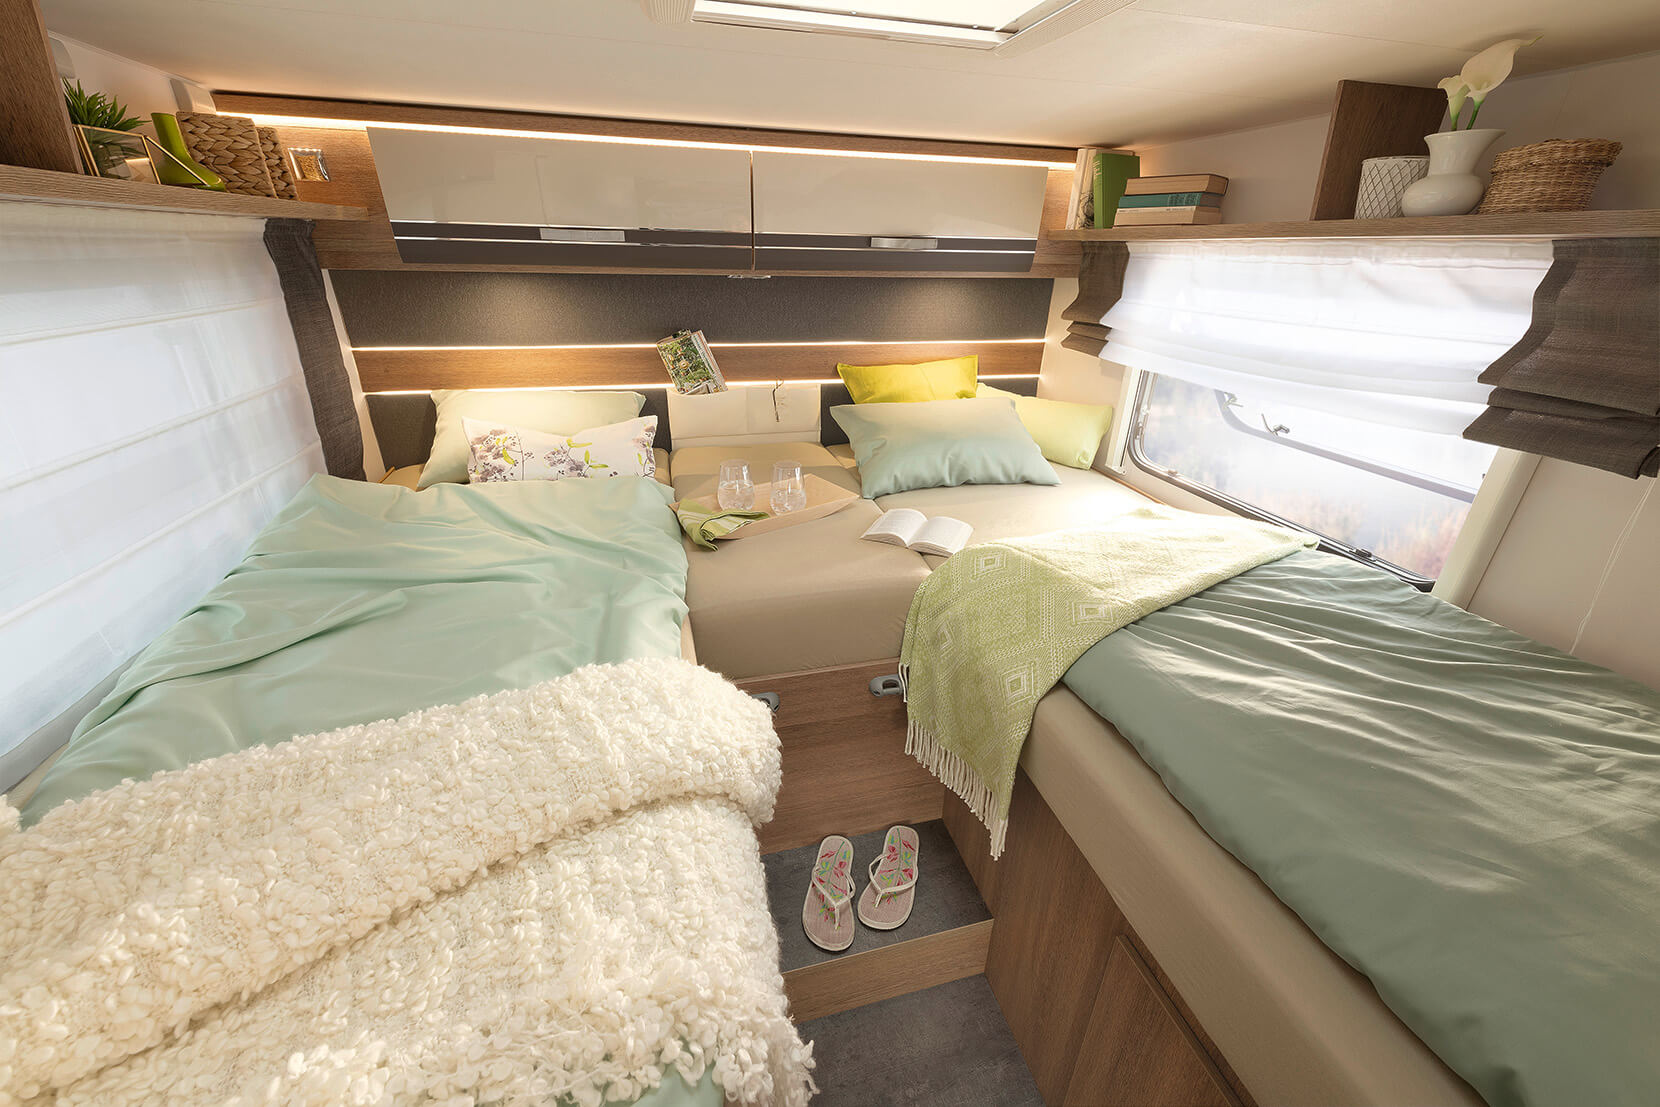 Sweet dreams are made of this: Dethleffs equips all fixed beds in their motorhomes with 15 cm-thick, 7-zone mattresses made of climate-regulating material. All single beds are at least 195 cm long and can be optionally converted into a large sleeping area • T / I 7057 EBL